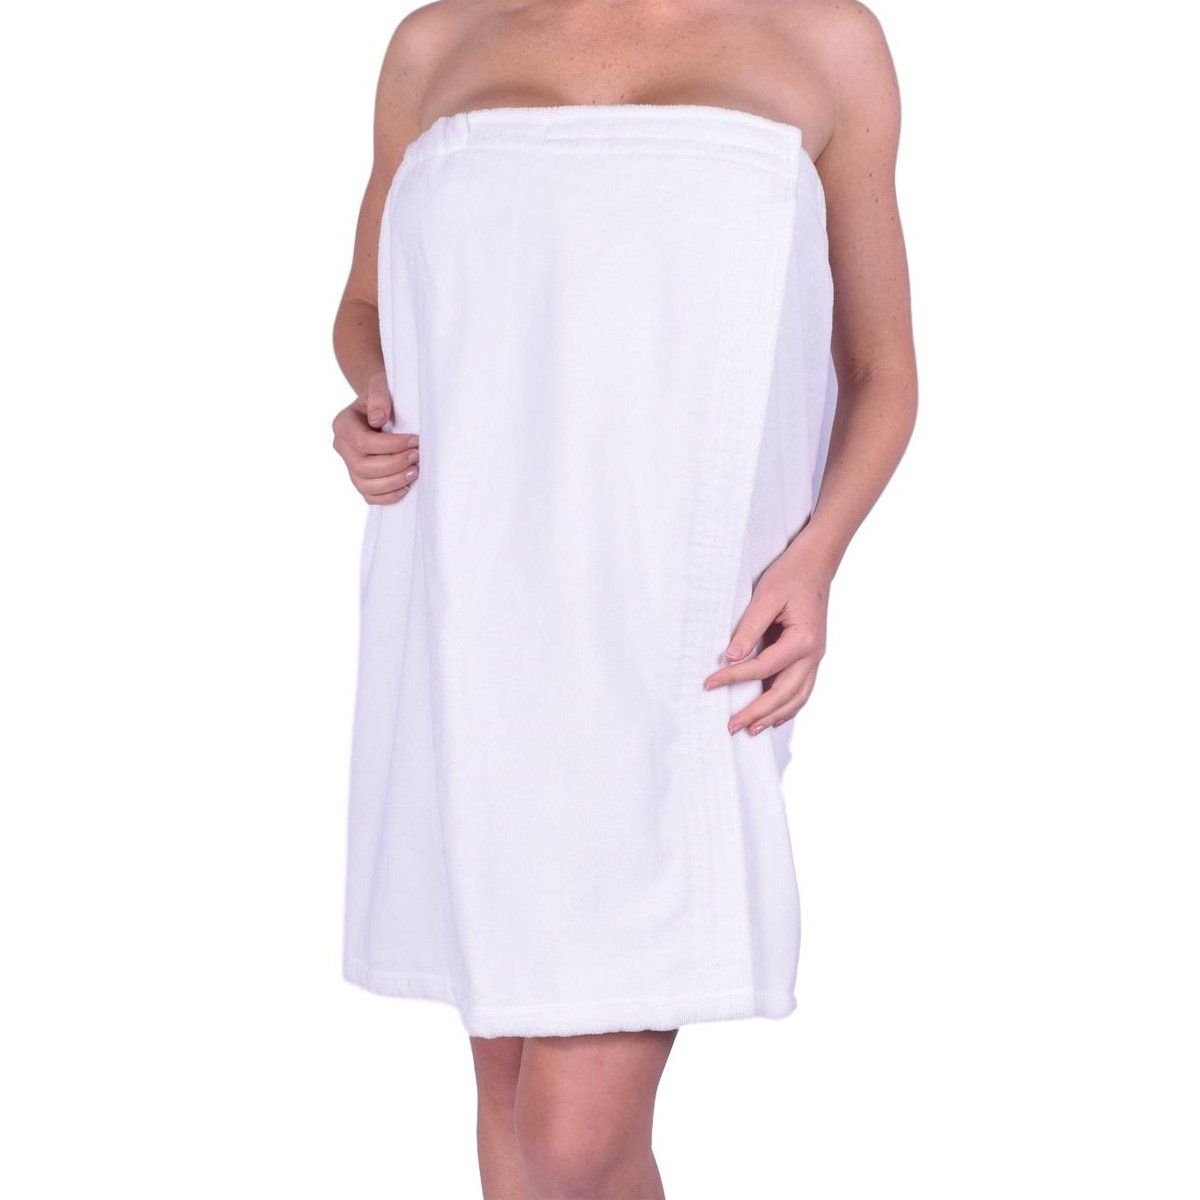 anatolian Womens Body Wrap Towel - 100% Cotton Adjustable Bath Cover Up - Made in Turkey (Snow White, 1)